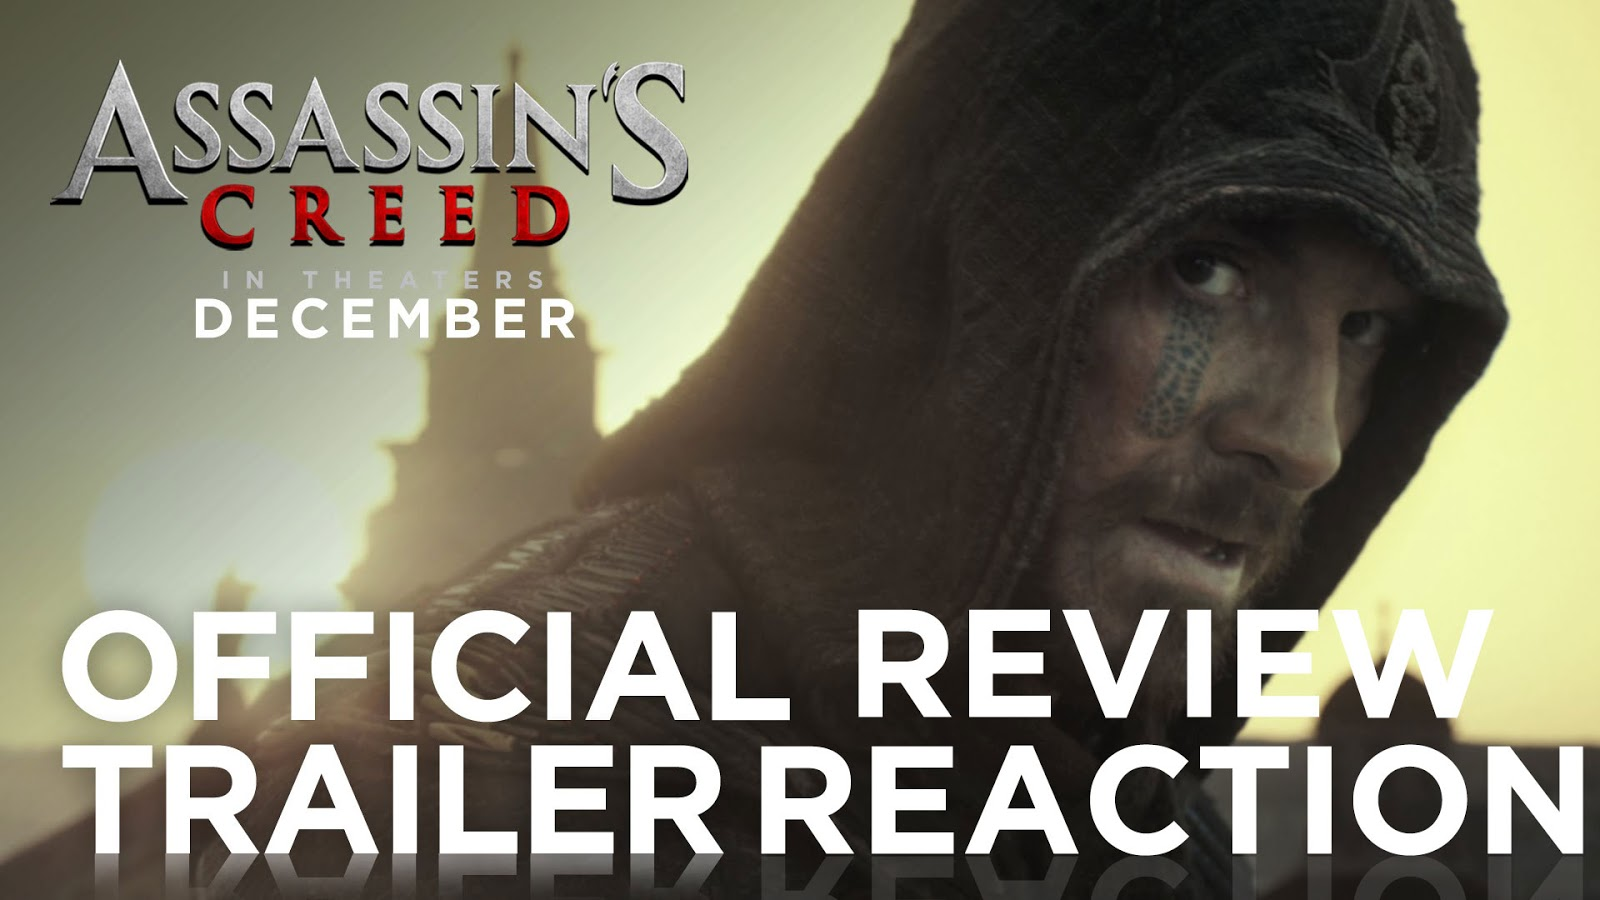 reaction to trailer for Assassin's Creed